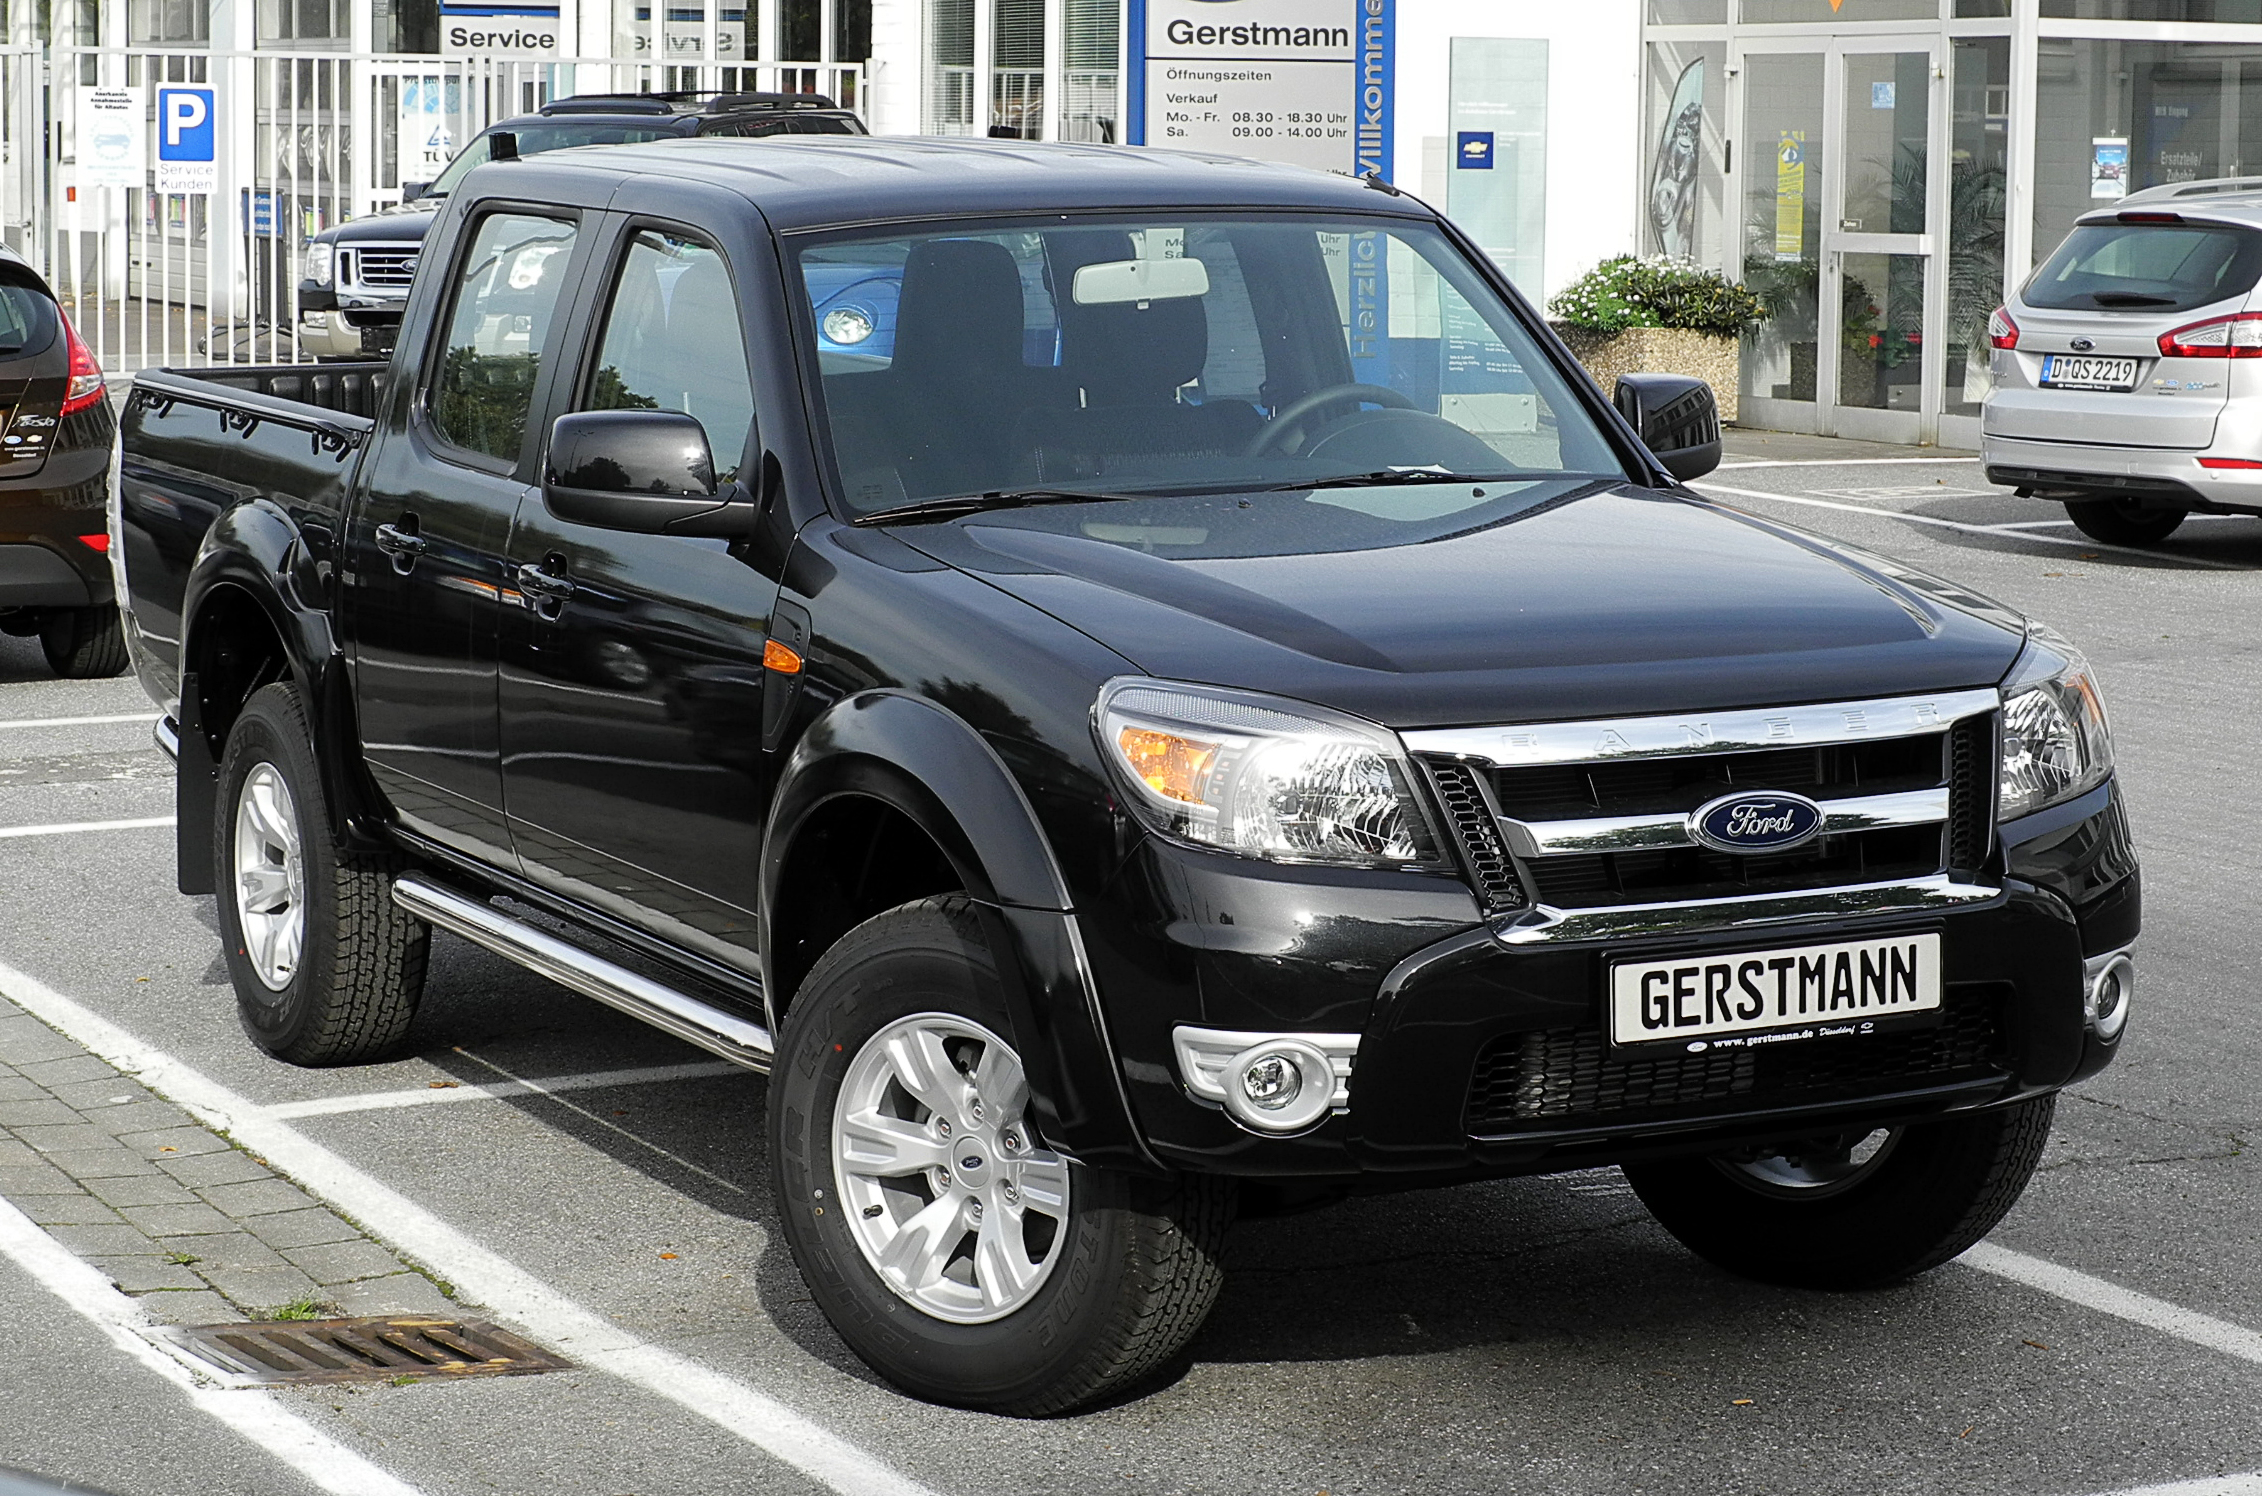 file ford ranger xlt 2 5 tdci doppelkabine ii facelift. Black Bedroom Furniture Sets. Home Design Ideas